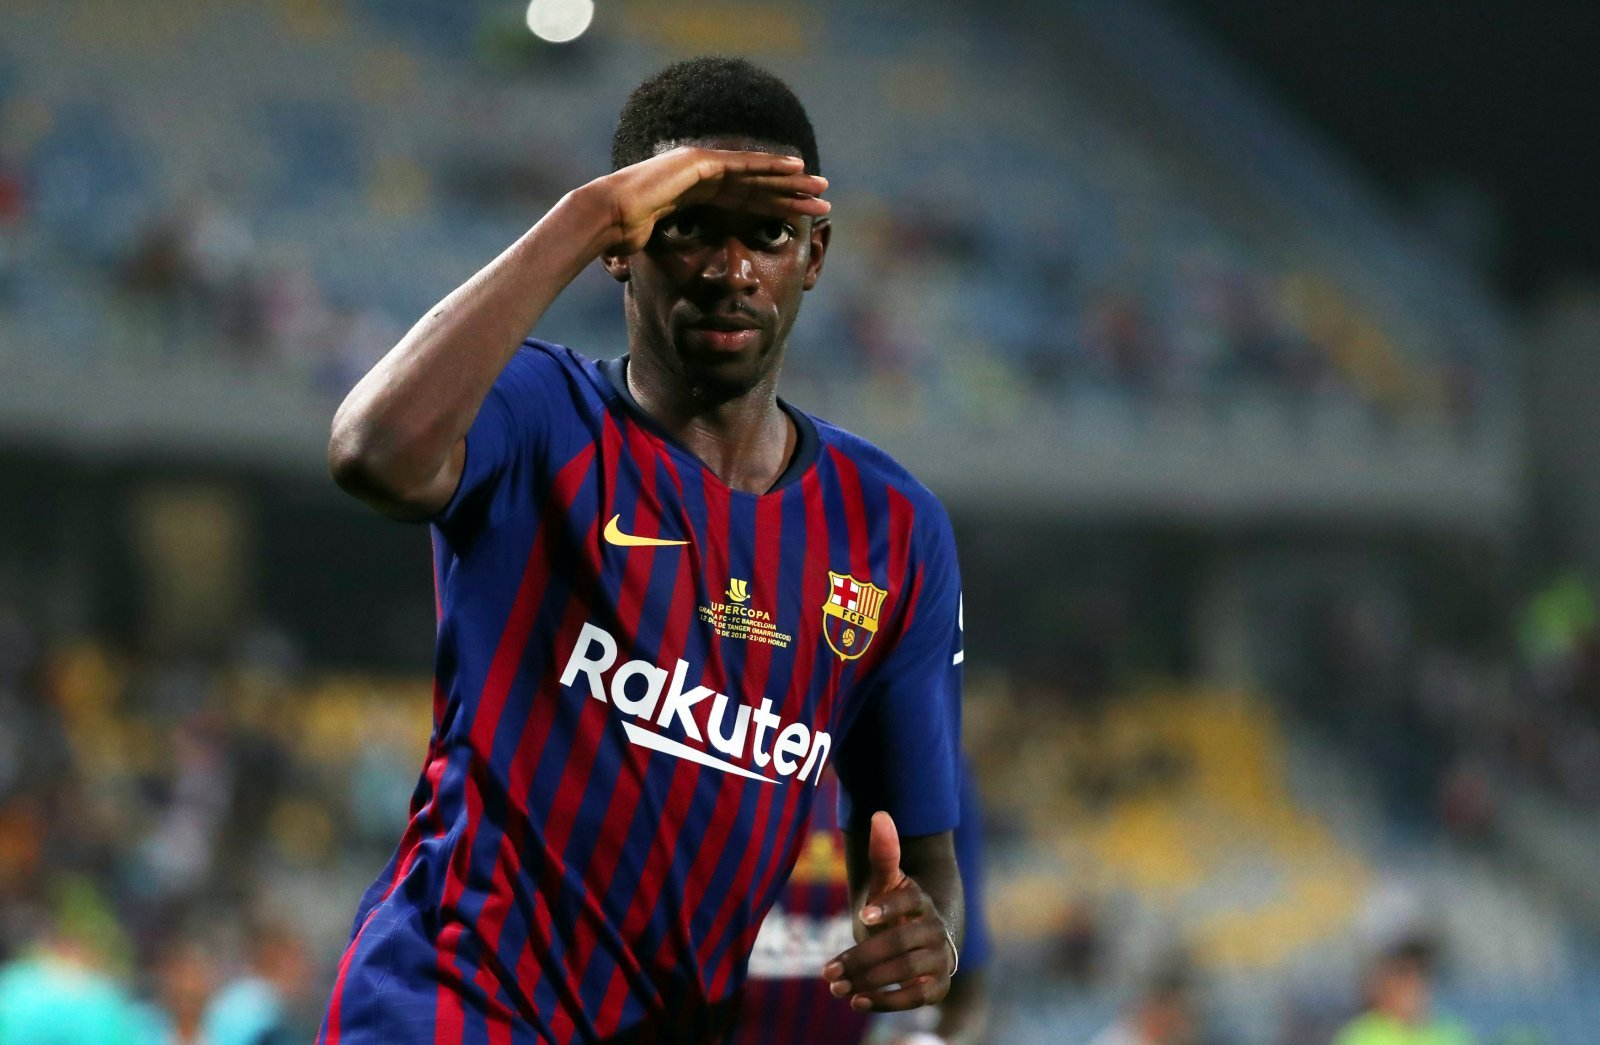 Barcelona: Fans react to Ousmane Dembele returning from injury